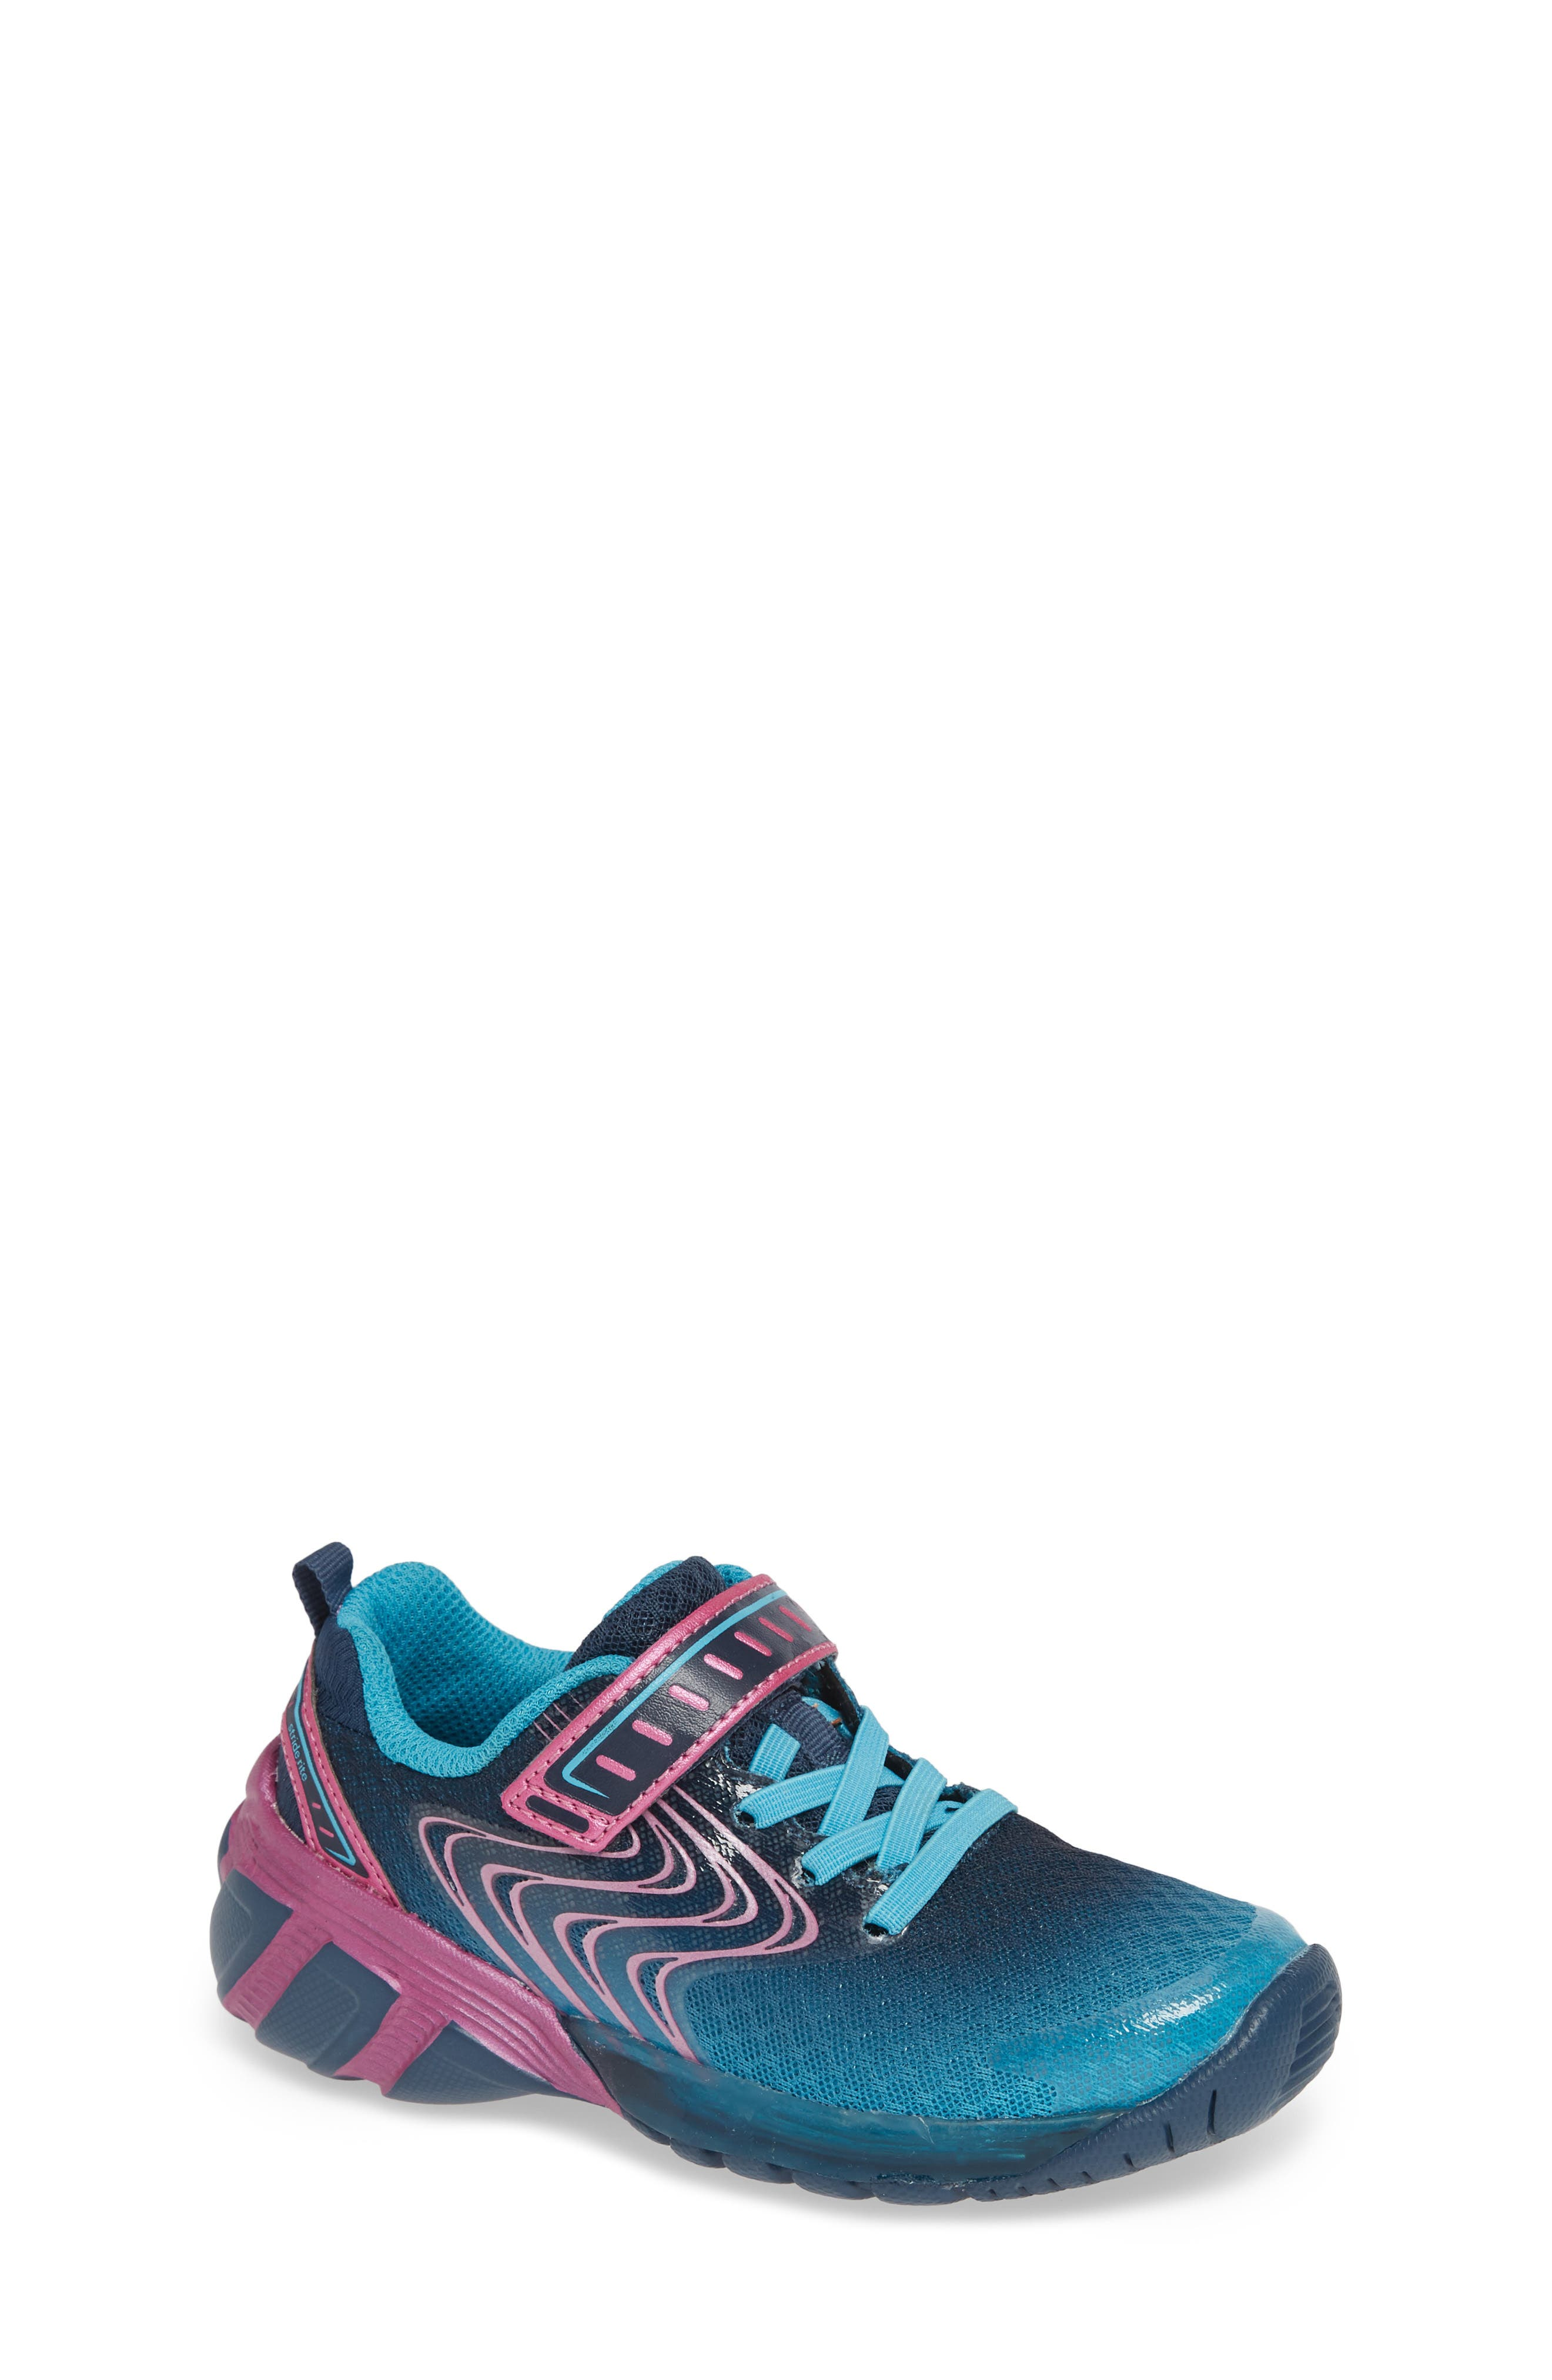 Lights Lux Light-Up Sneaker,                         Main,                         color, BLUE